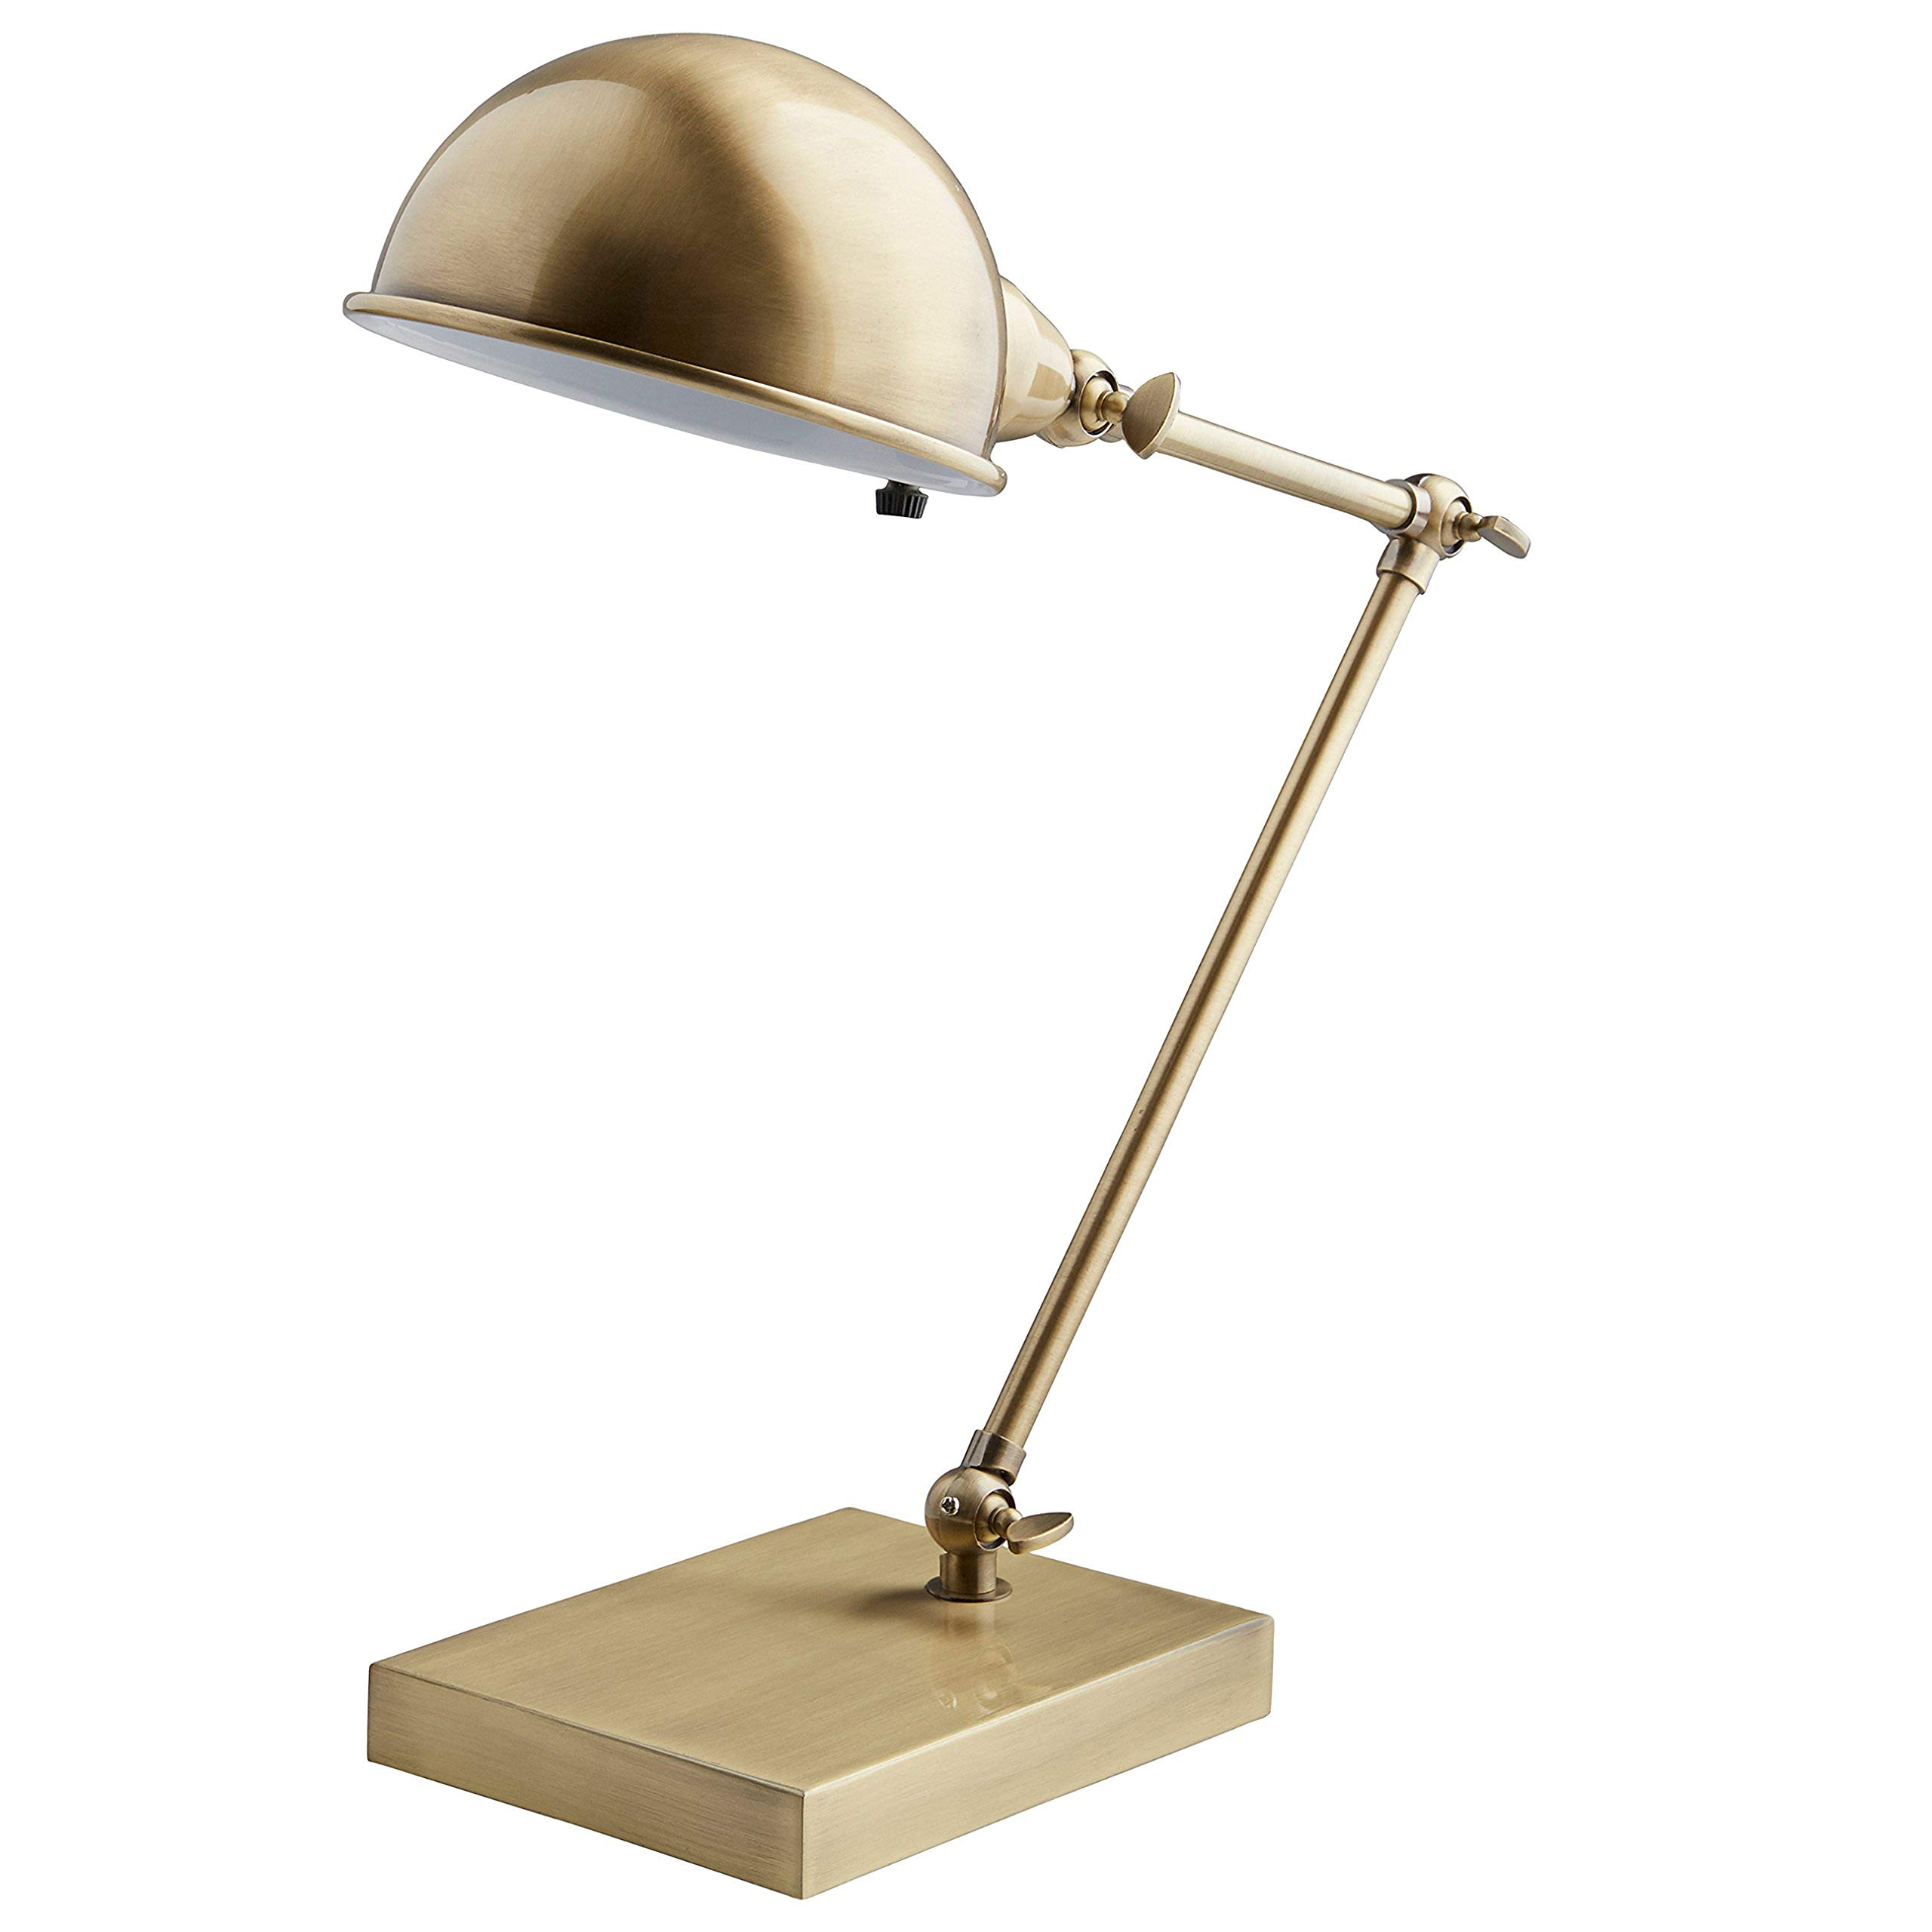 Stone & Beam Vintage Task Table Desk Lamp With LED Light Bulb - 6.5 x 10 x 14 Inches, Antique Brass by Stone & Beam